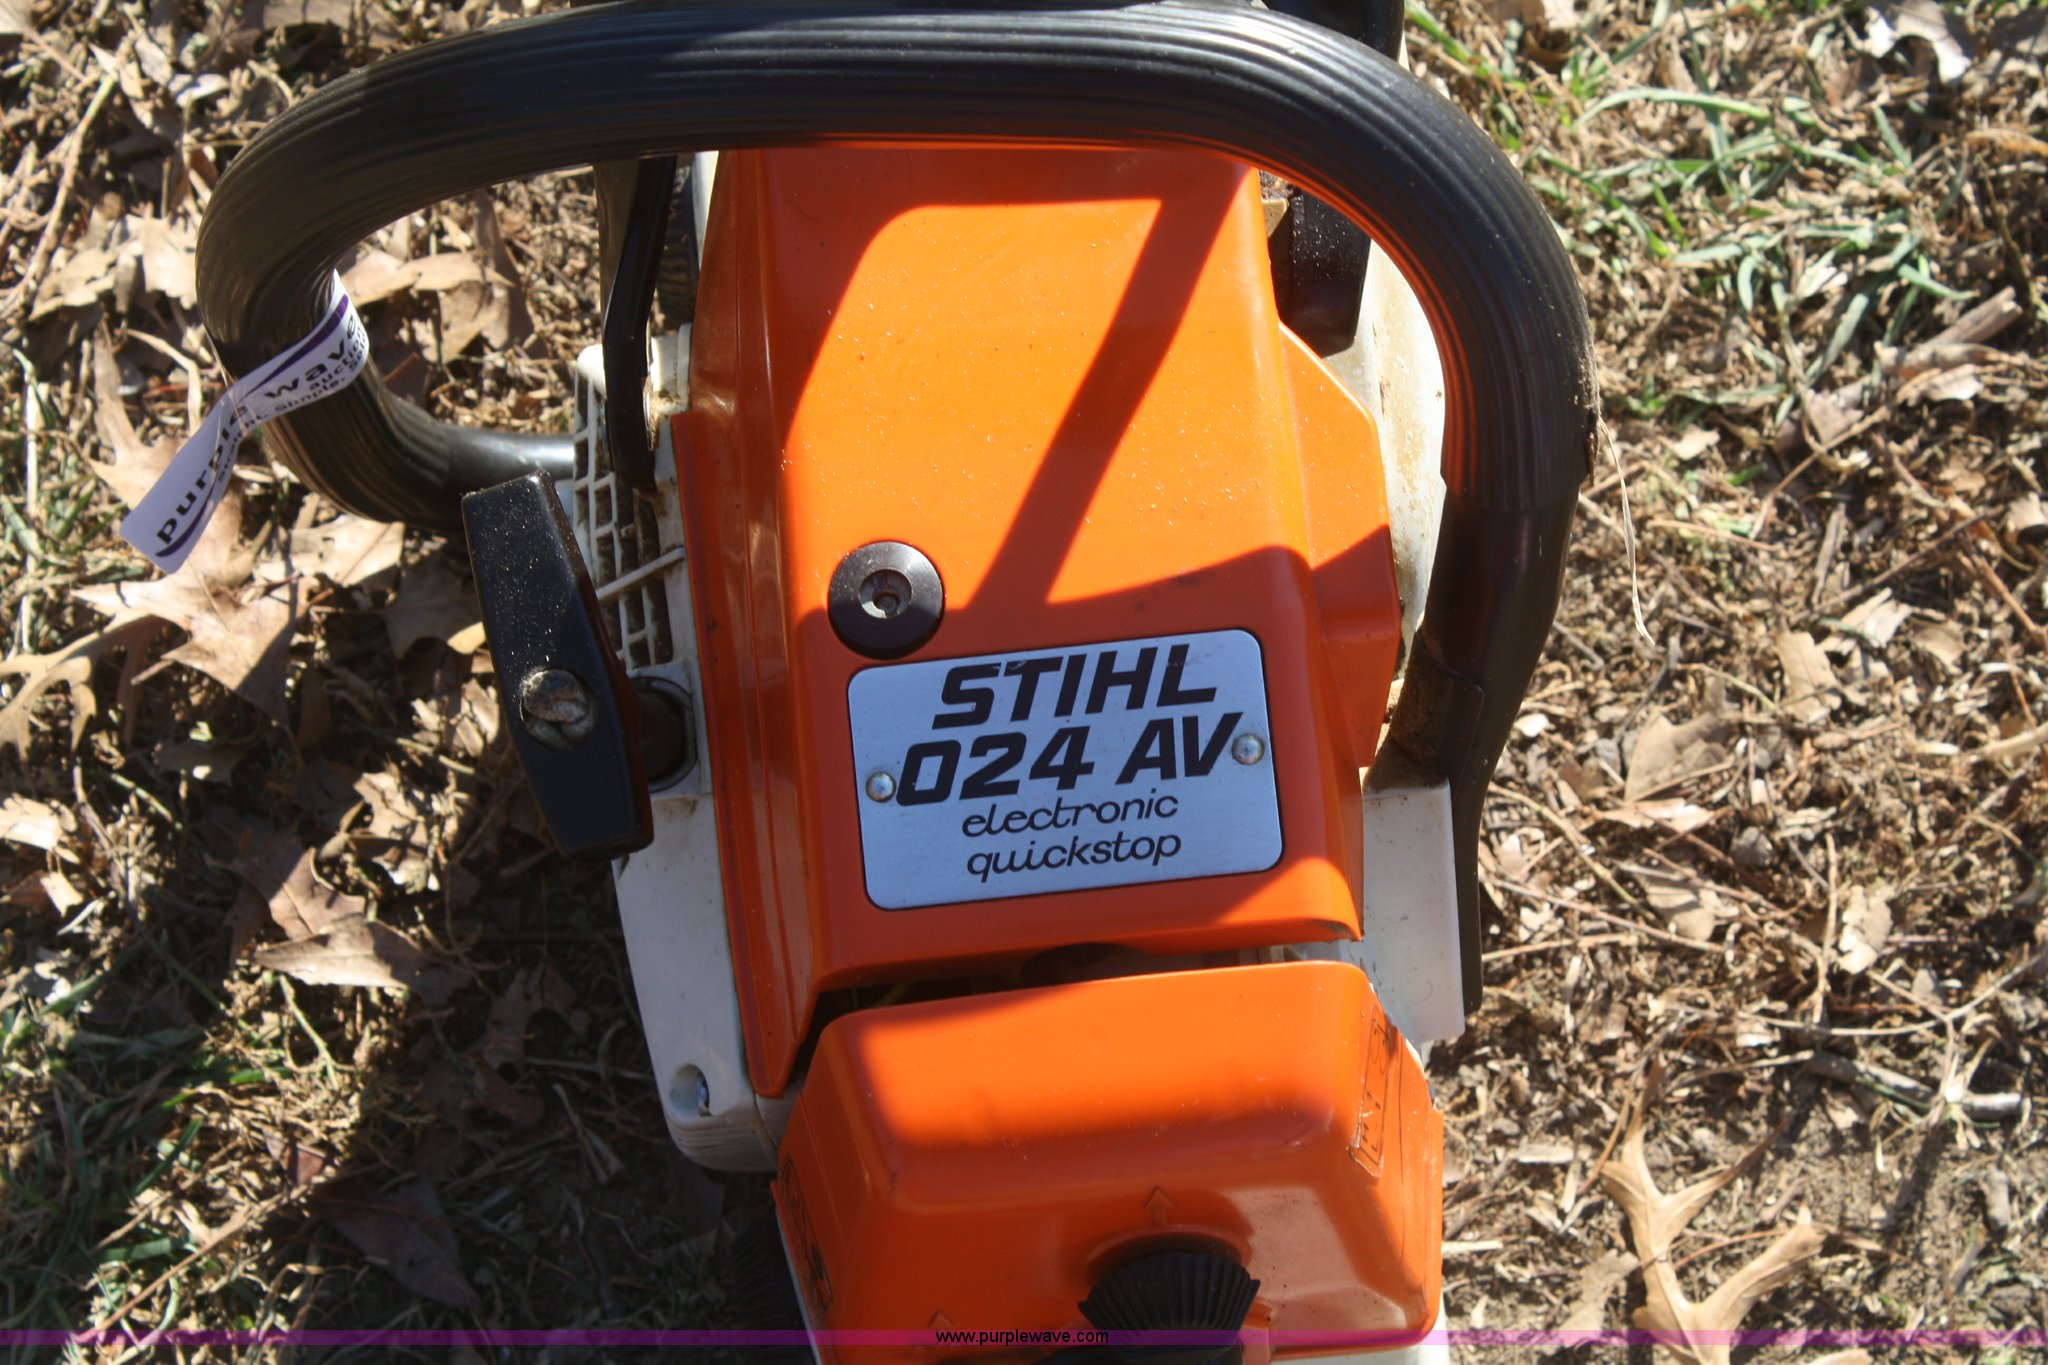 Stihl 024AV chainsaw | Item O9825 | SOLD! January 23 Midwest